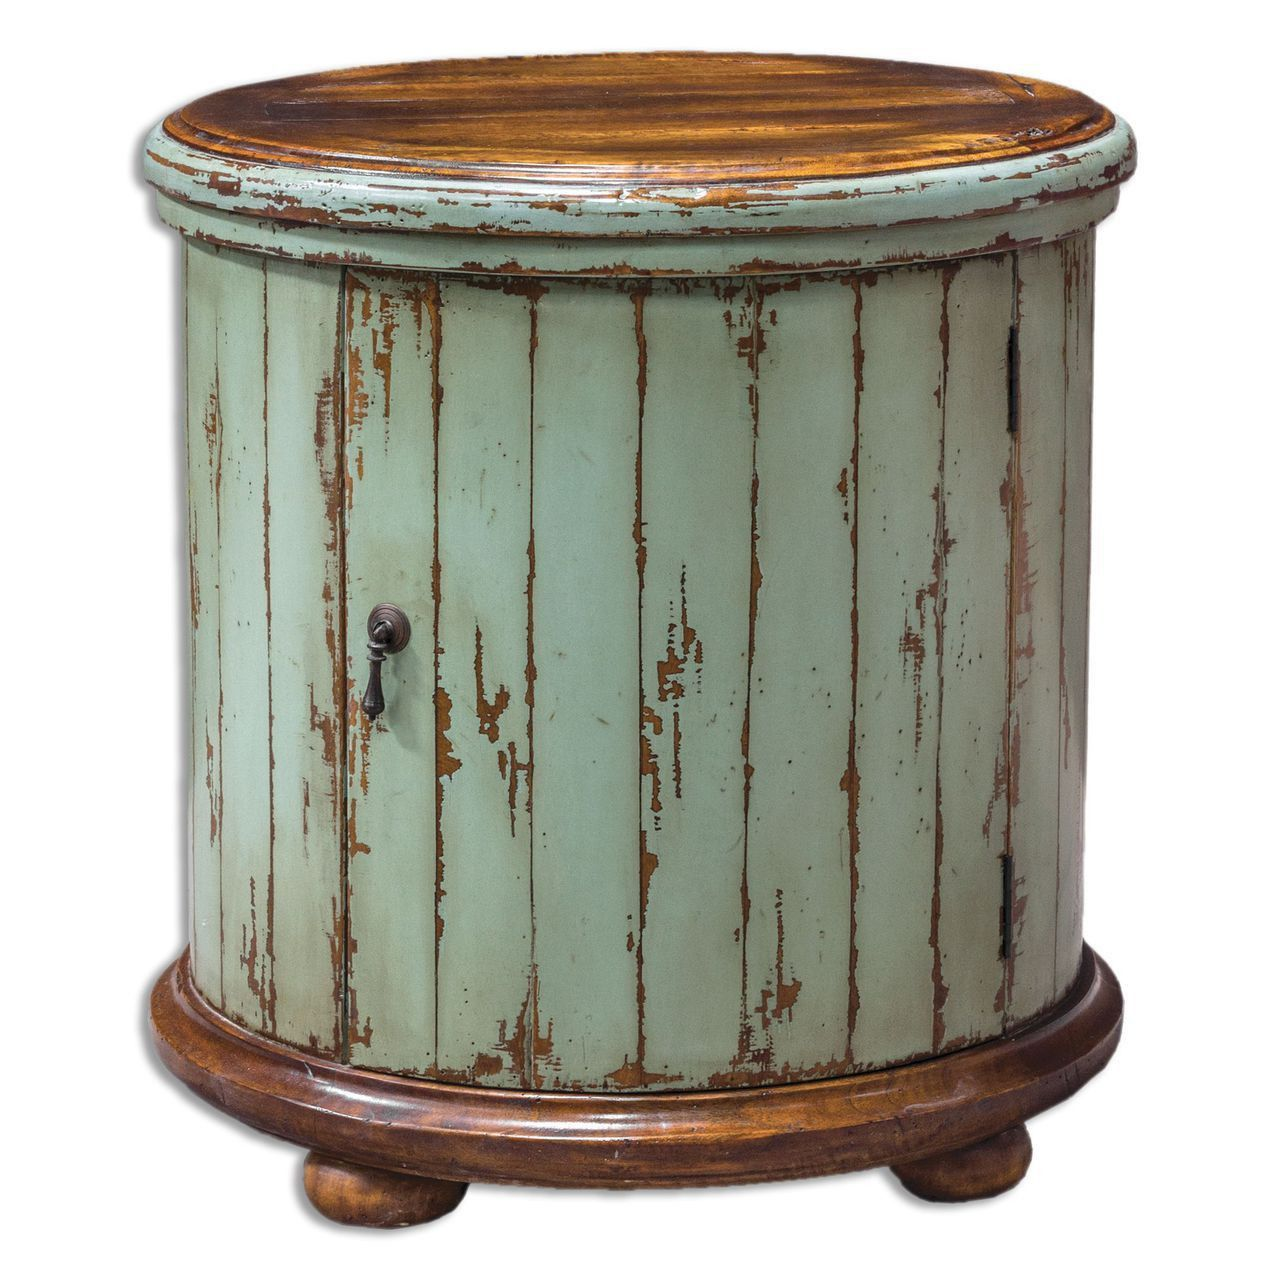 uttermost axelle wooden drum accent table products furniture wood wall decor faux marble end blue glass lamp rustic coffee toronto tray for small vintage and chairs white side